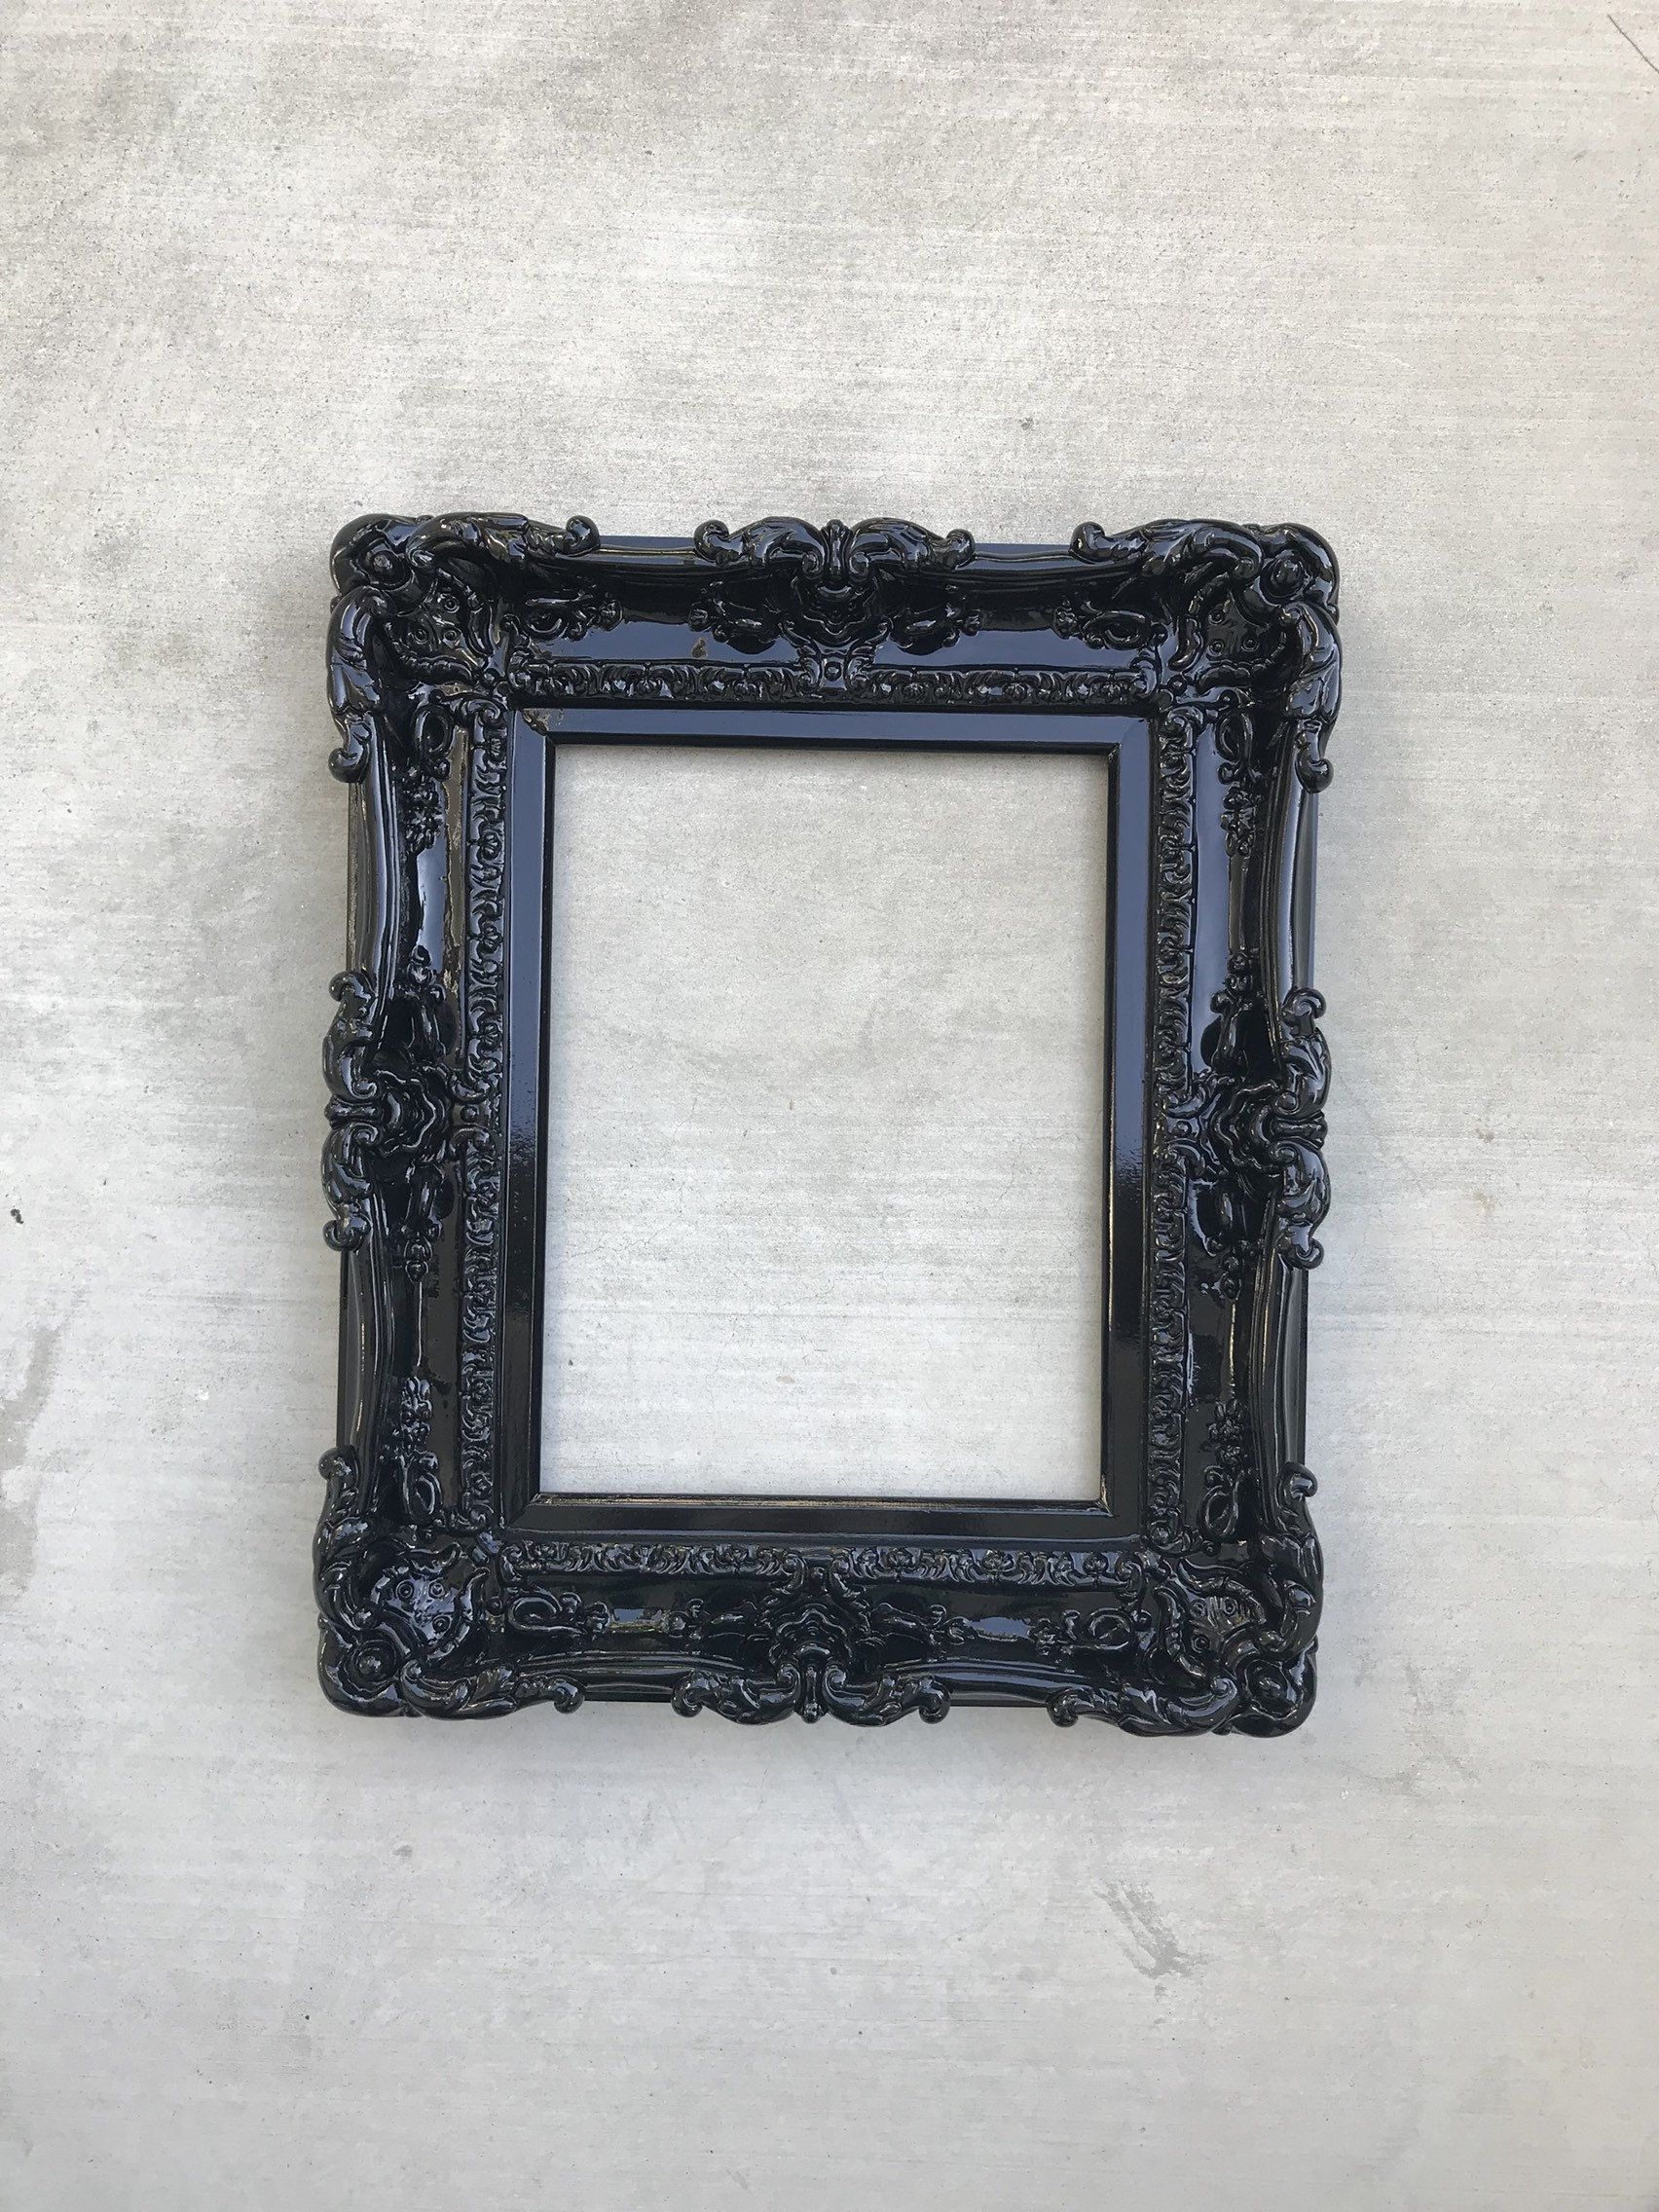 12x16 Black Frame Wall Mirror Frame For Canvas Or Art Paint Etsy Framed Mirror Wall Baroque Frames Ornate Picture Frames